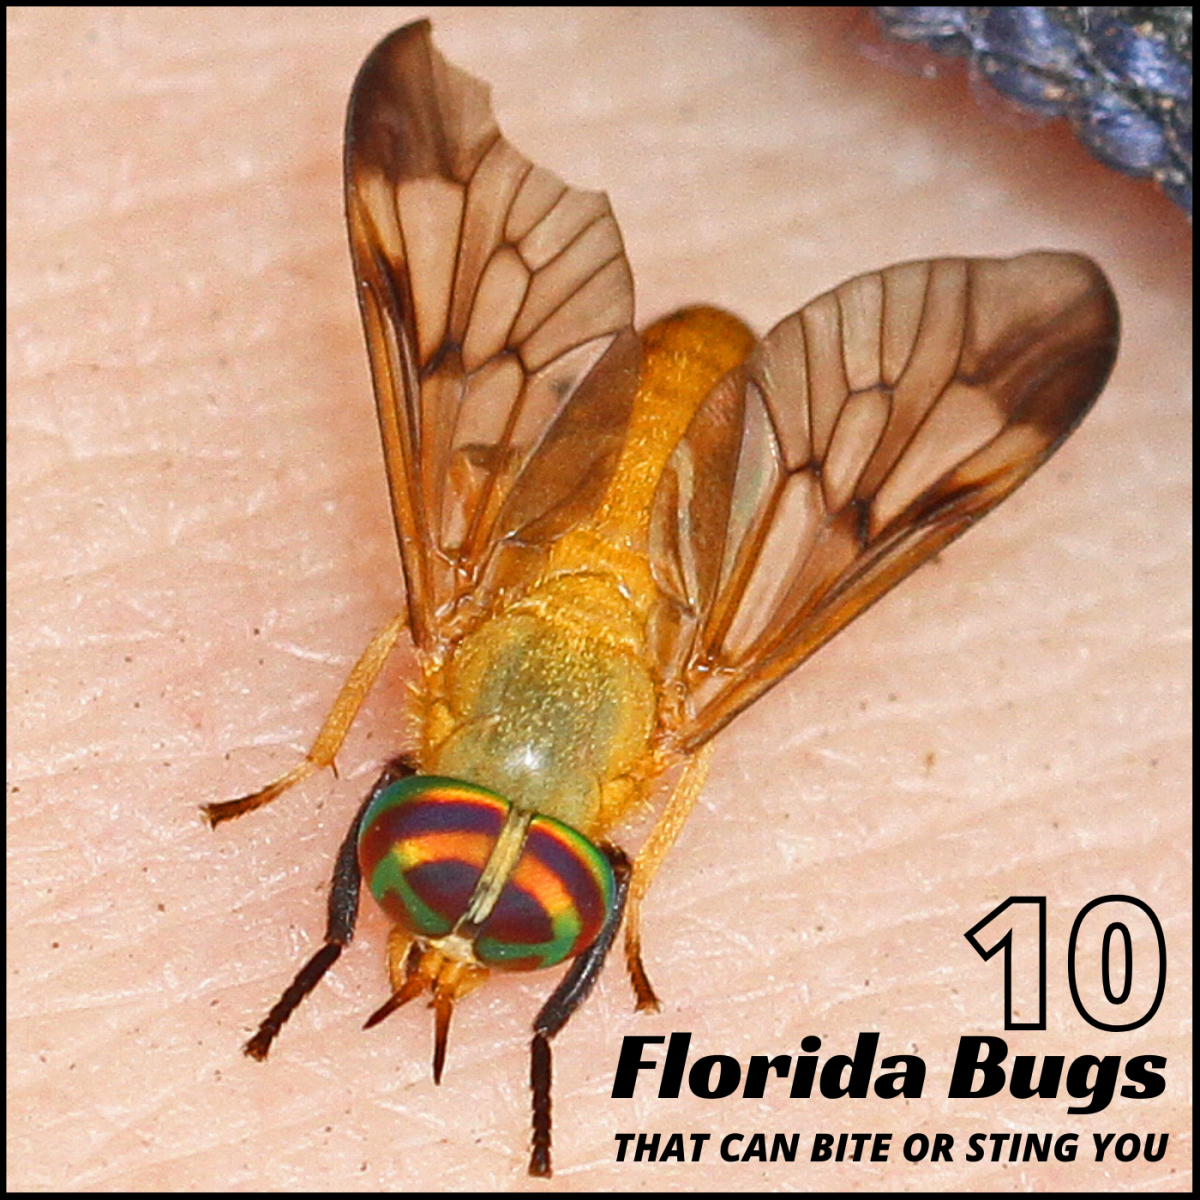 There are many bugs in Florida that can bite or sting you. Read on to find out about 10 of the most common culprits.